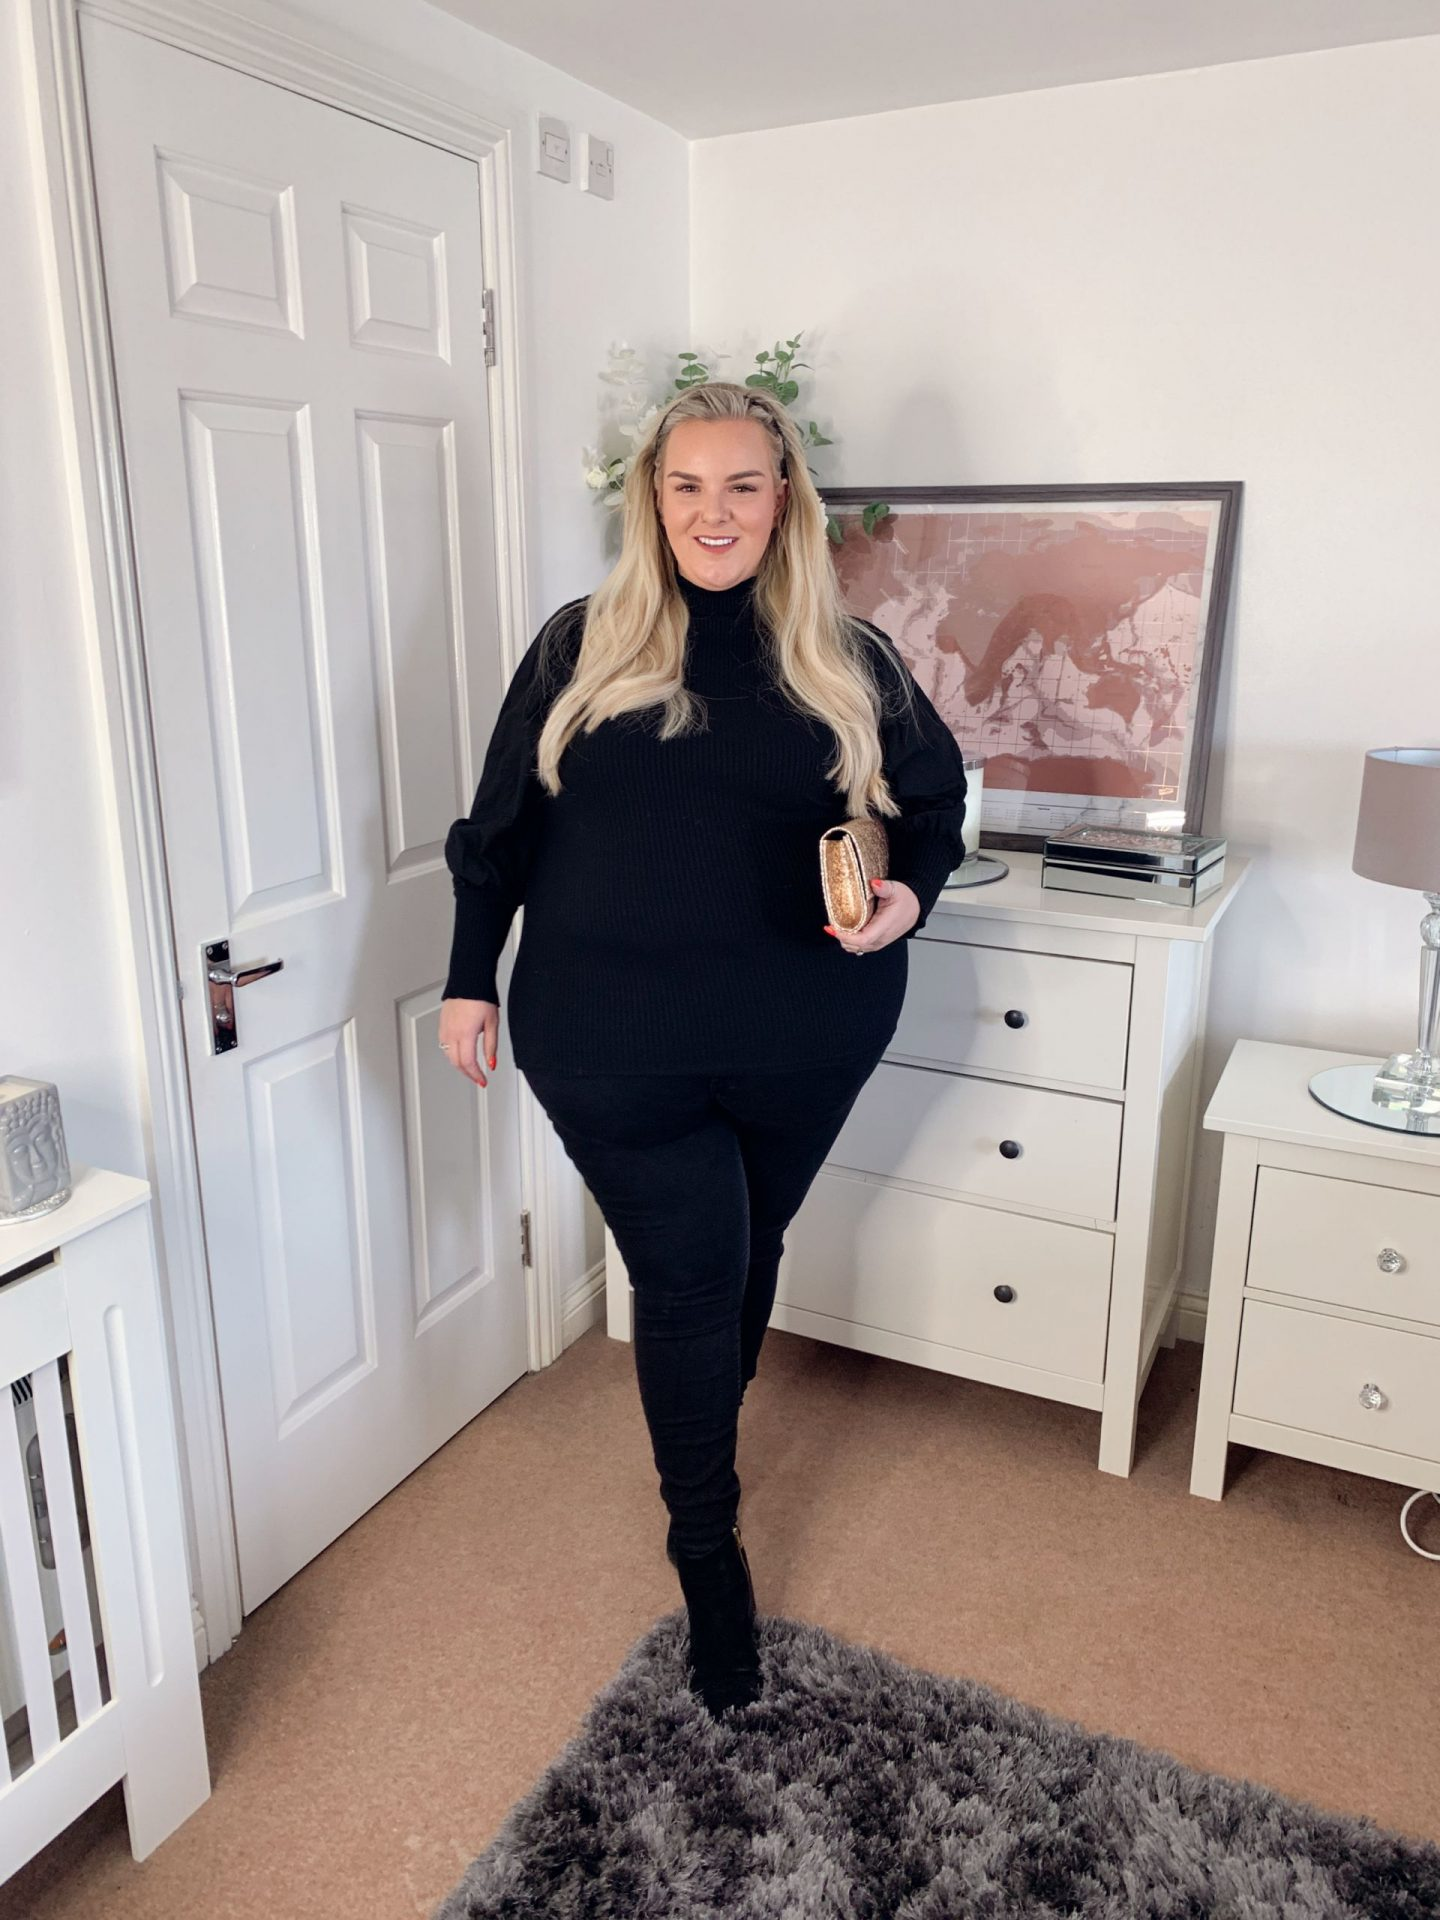 River Island Plus Size Blogger